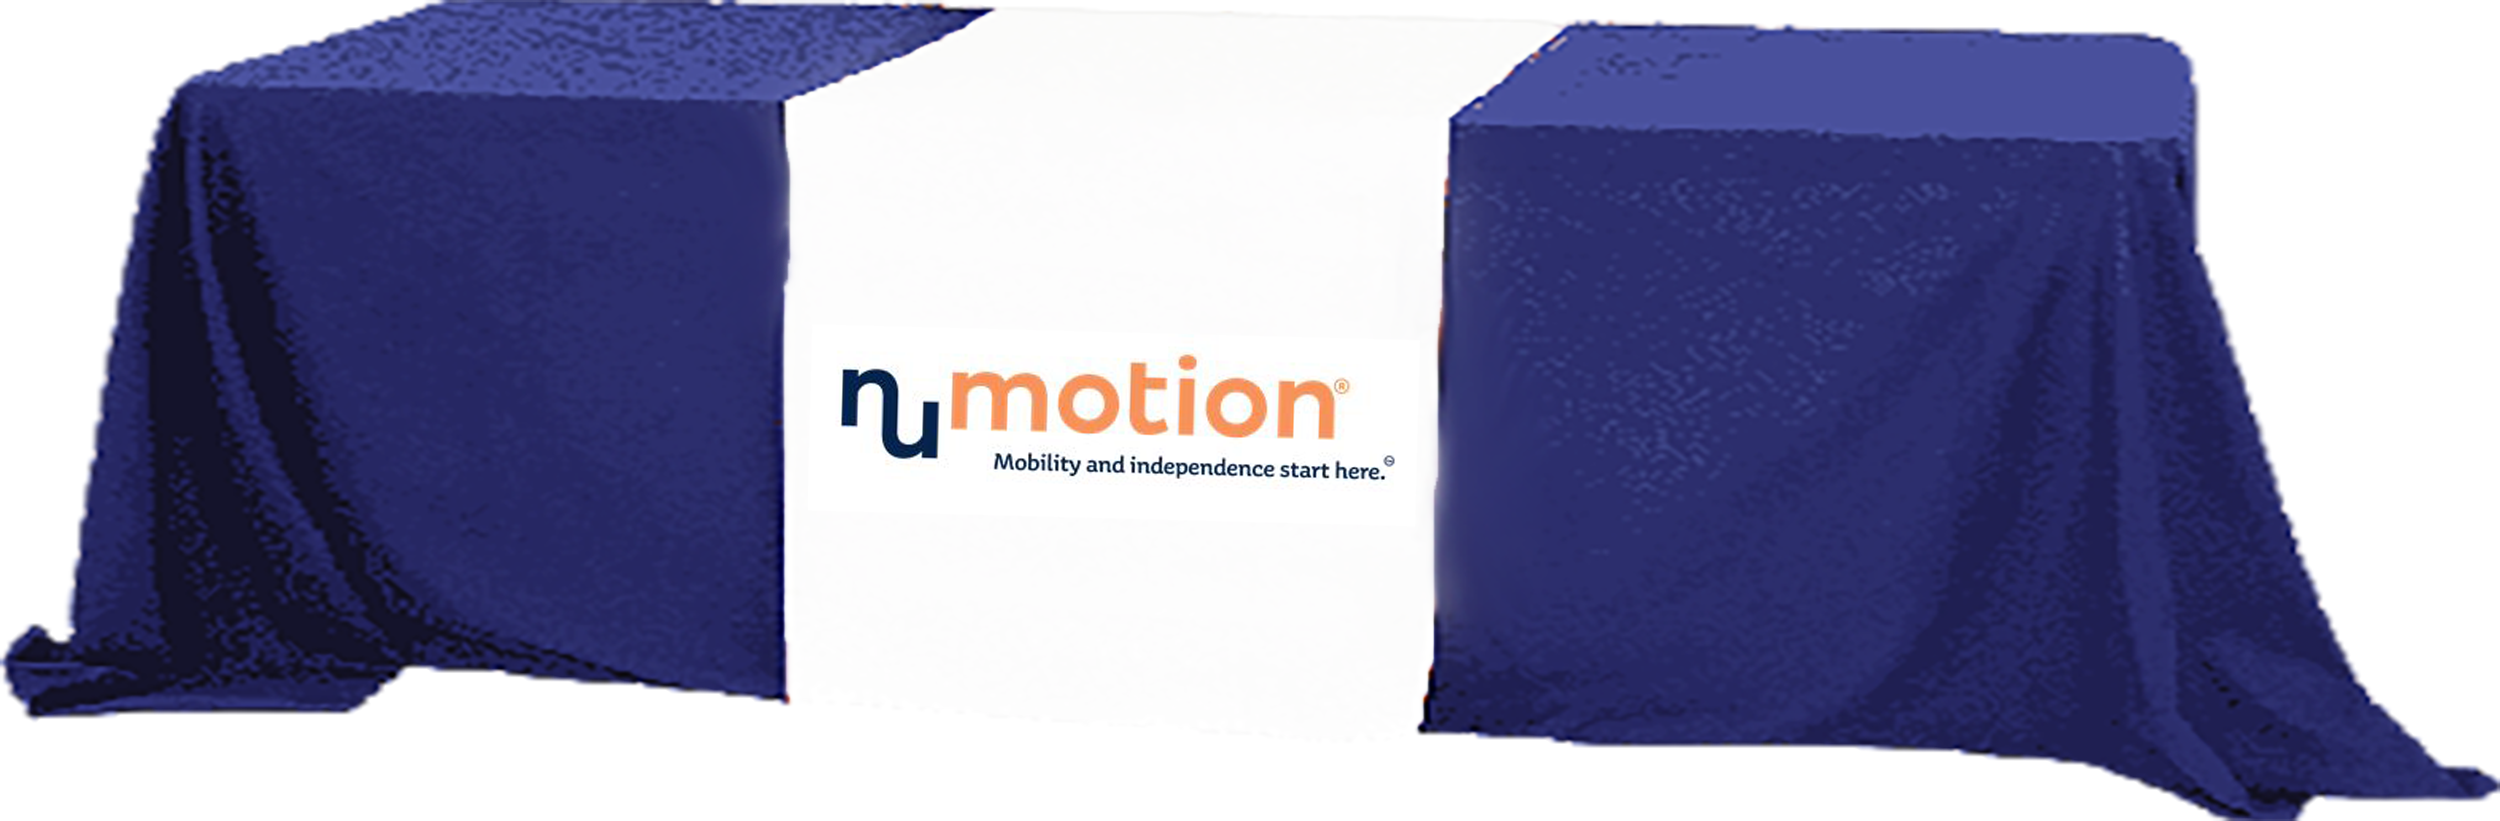 Numotion logo on a table cover over a table image